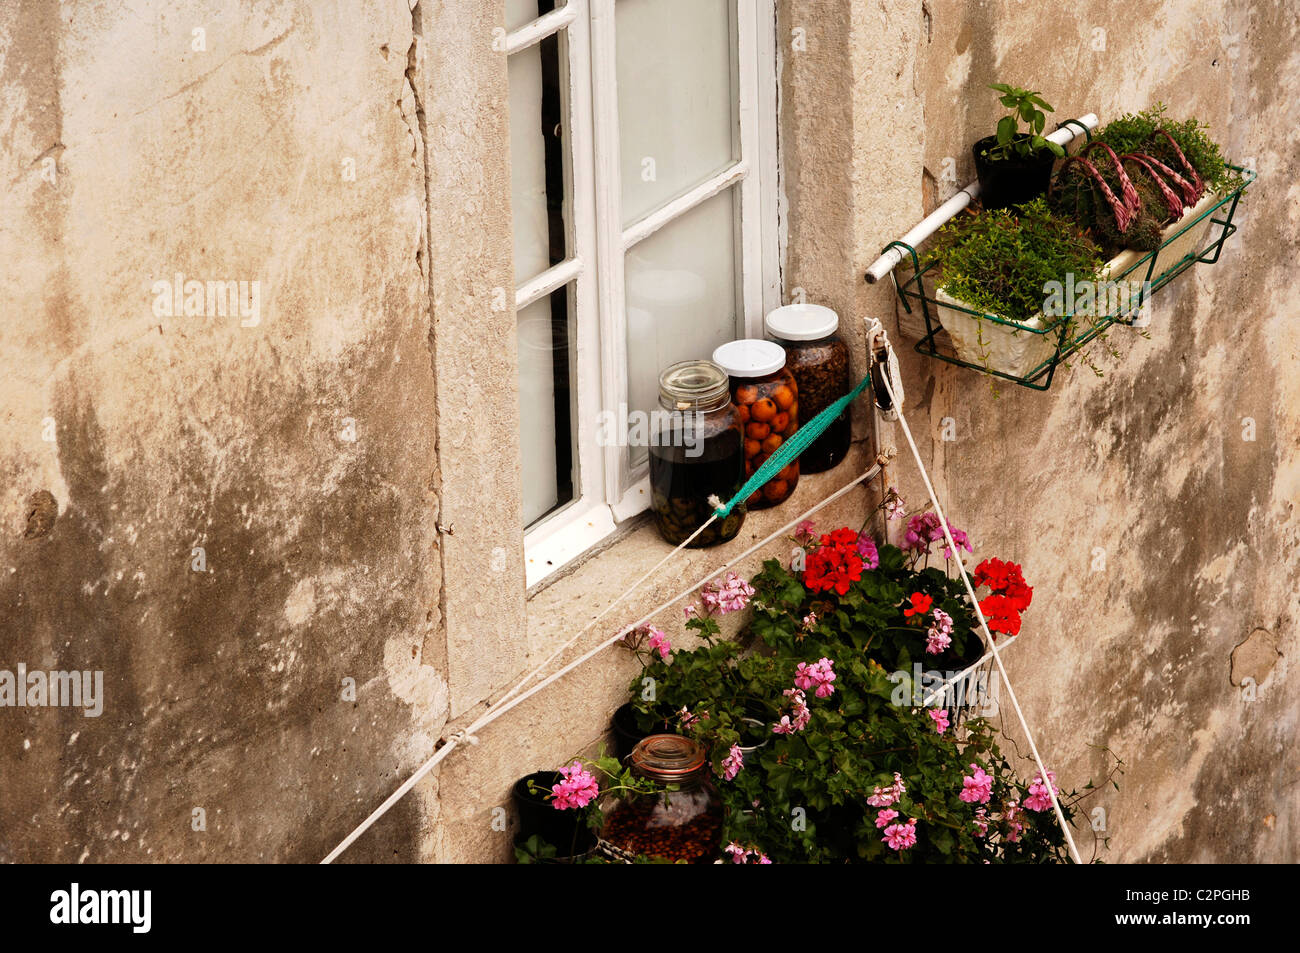 Jars of fruit with geranium and herb window boxes on a residential property, Dubrovnik, Croatia. Stock Photo